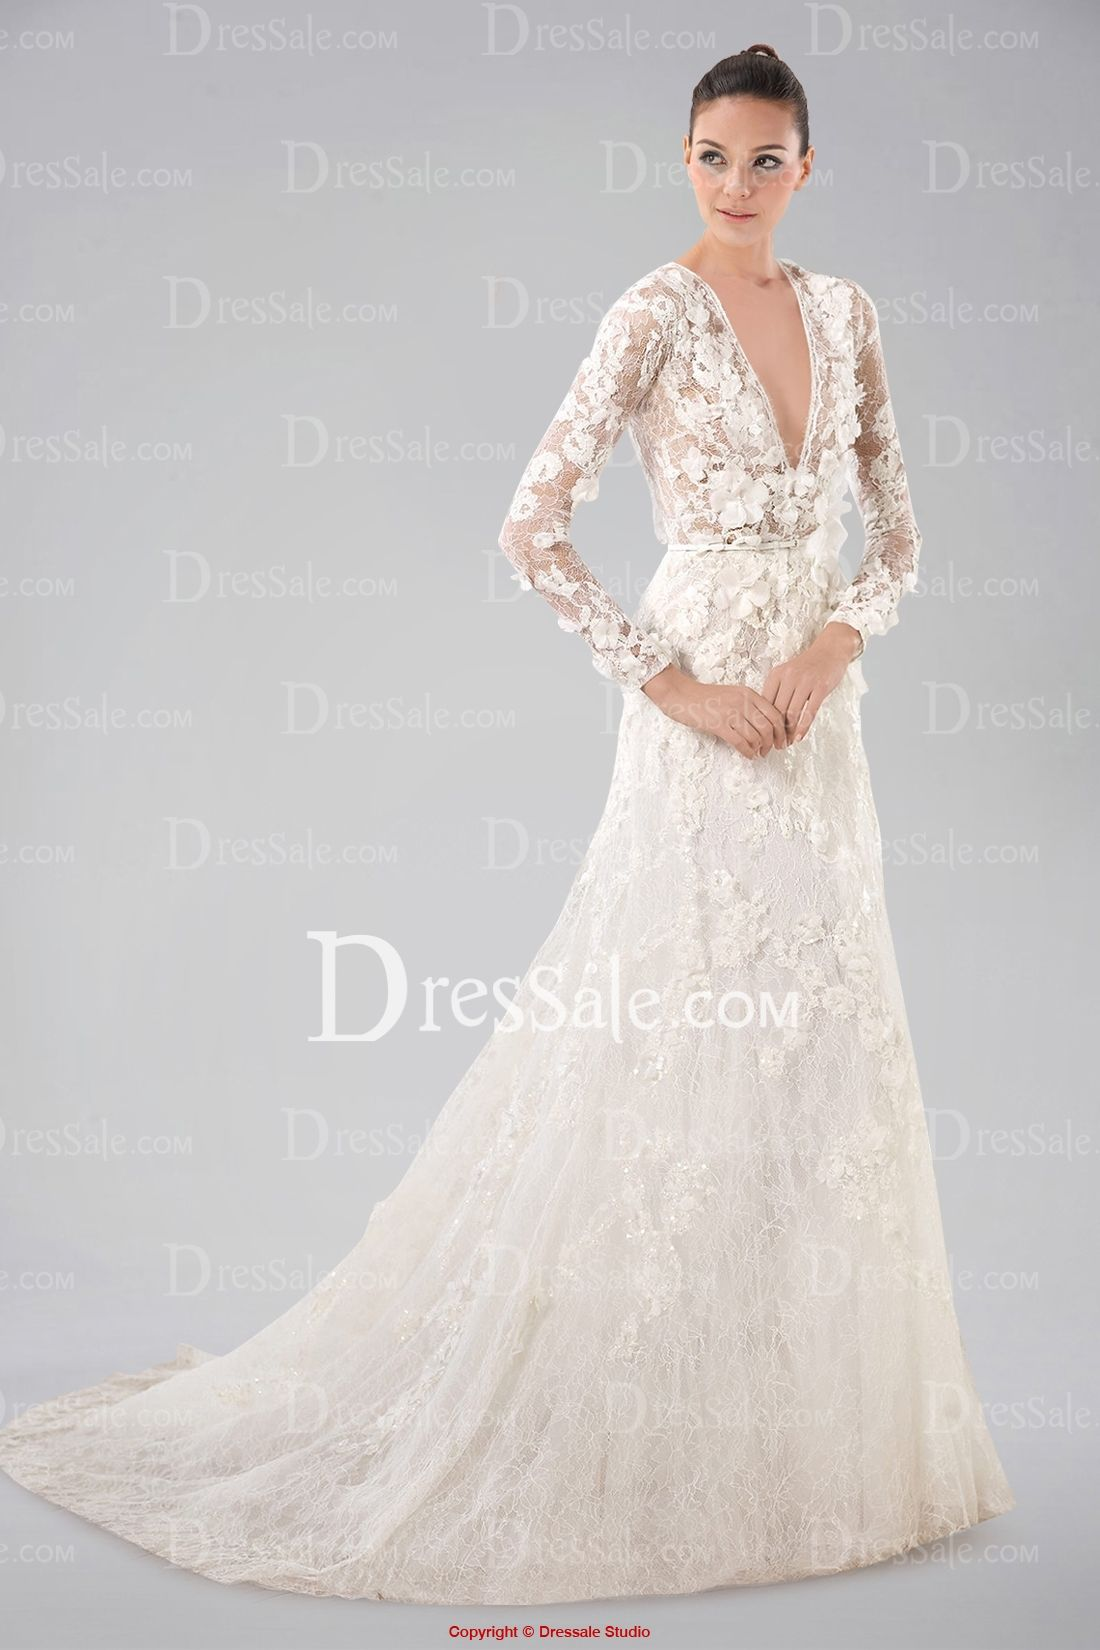 Breezy vneckline long sleeve wedding gown with lace overlay and